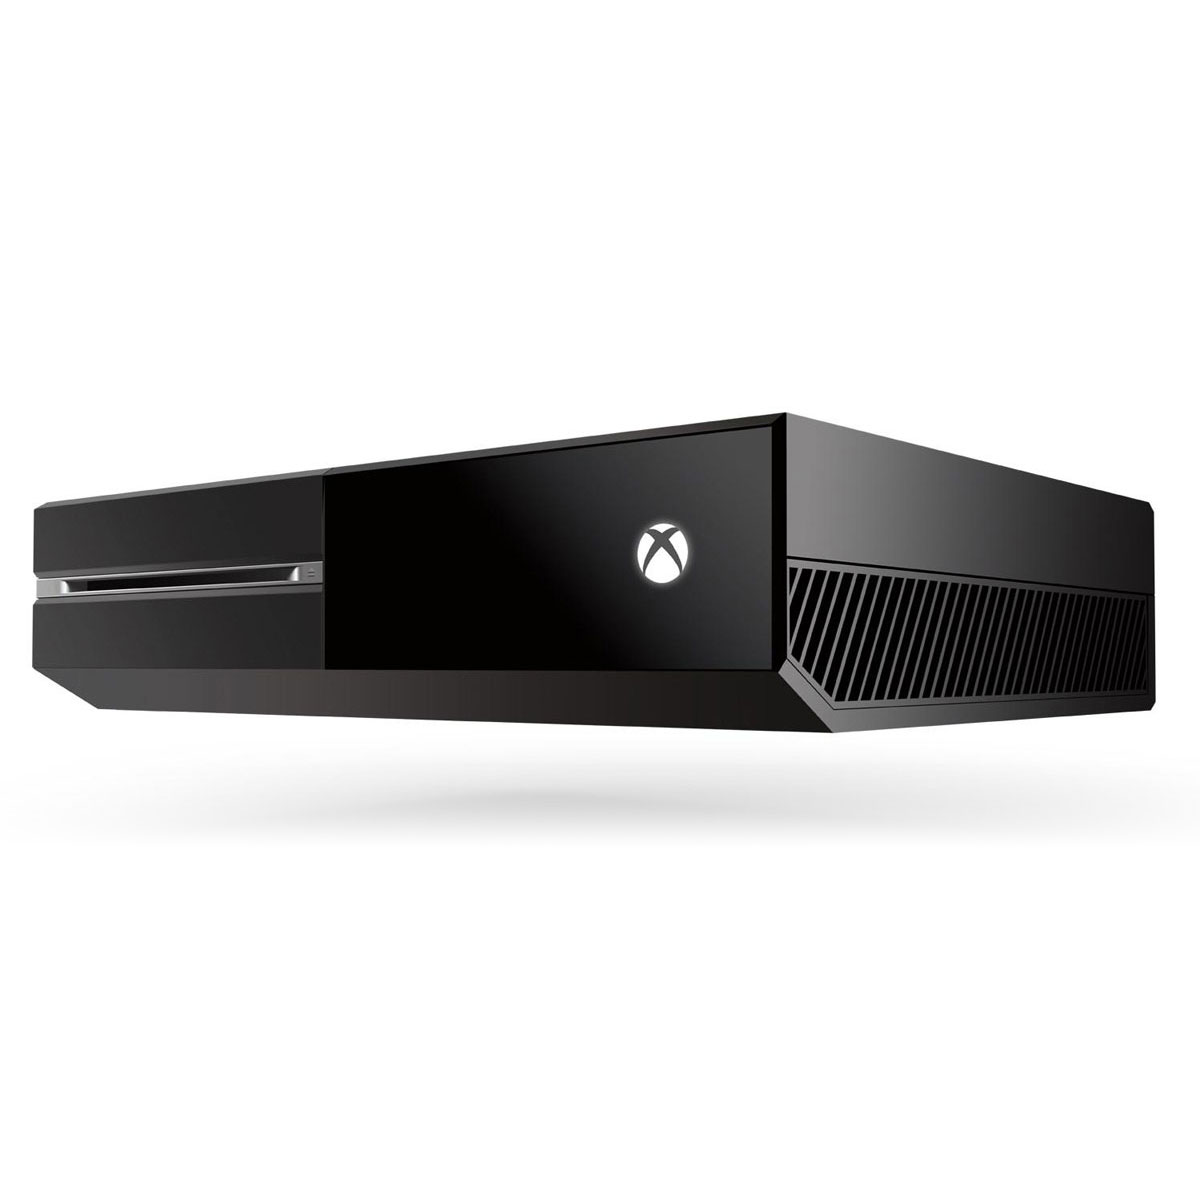 Microsoft xbox one edition day one console xbox one microsoft sur - Xbox one day one edition console ...